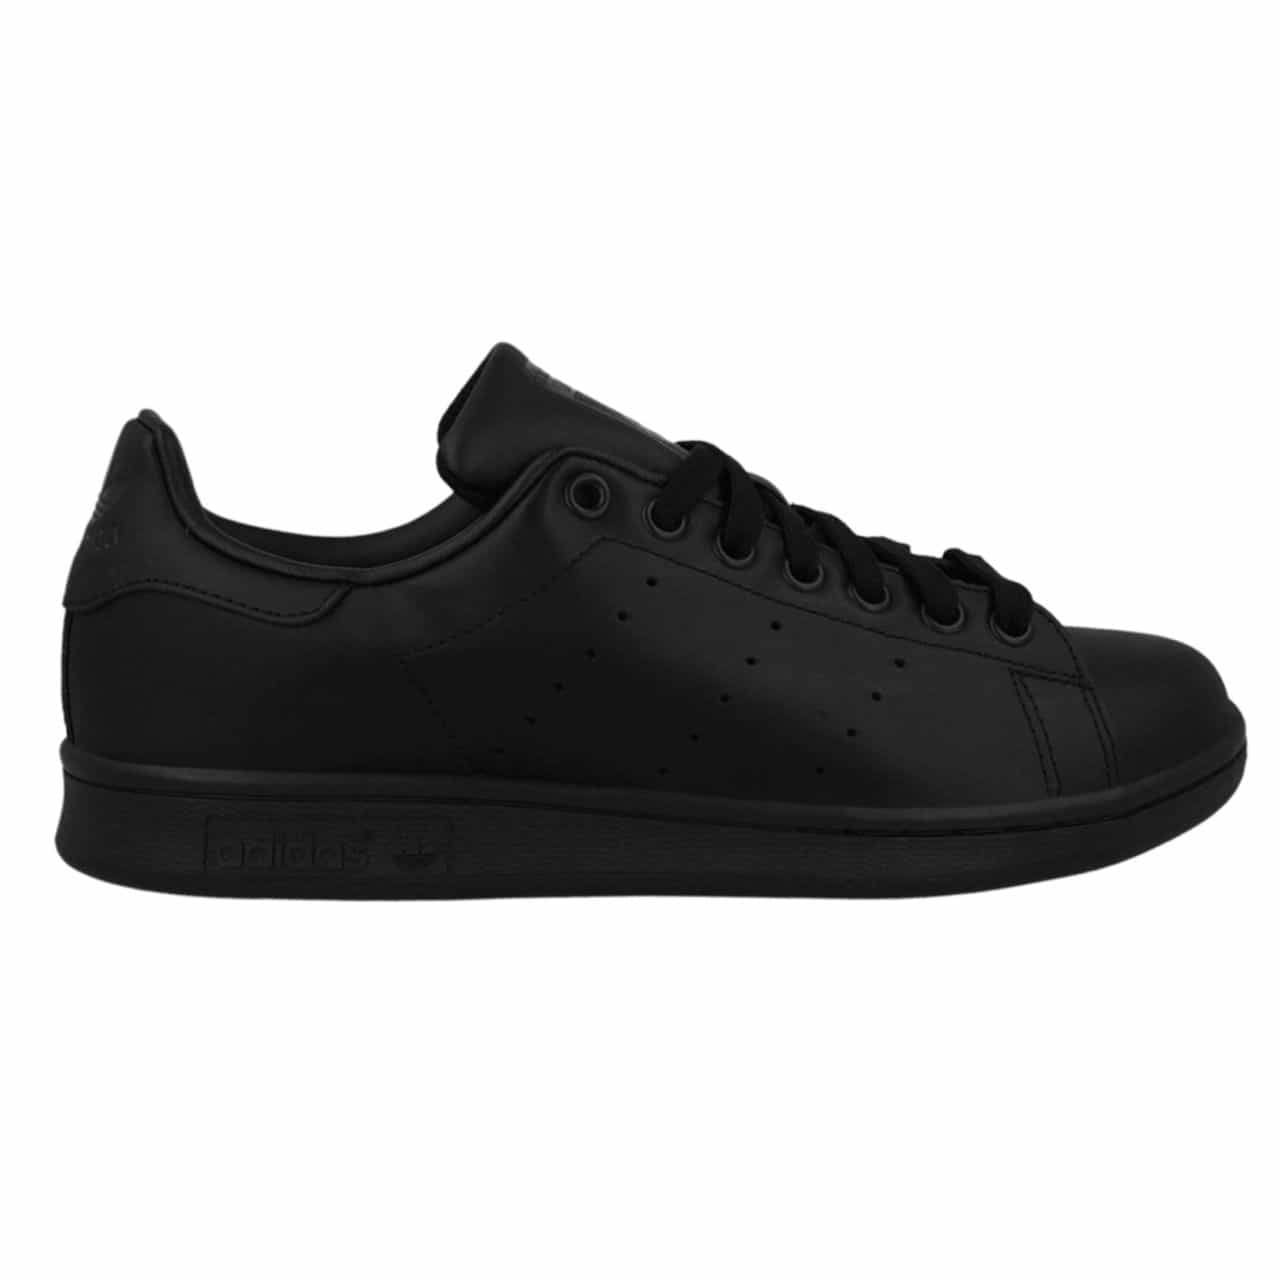 ADIDASI ORIGINALI ADIDAS STAN SMITH - M20327